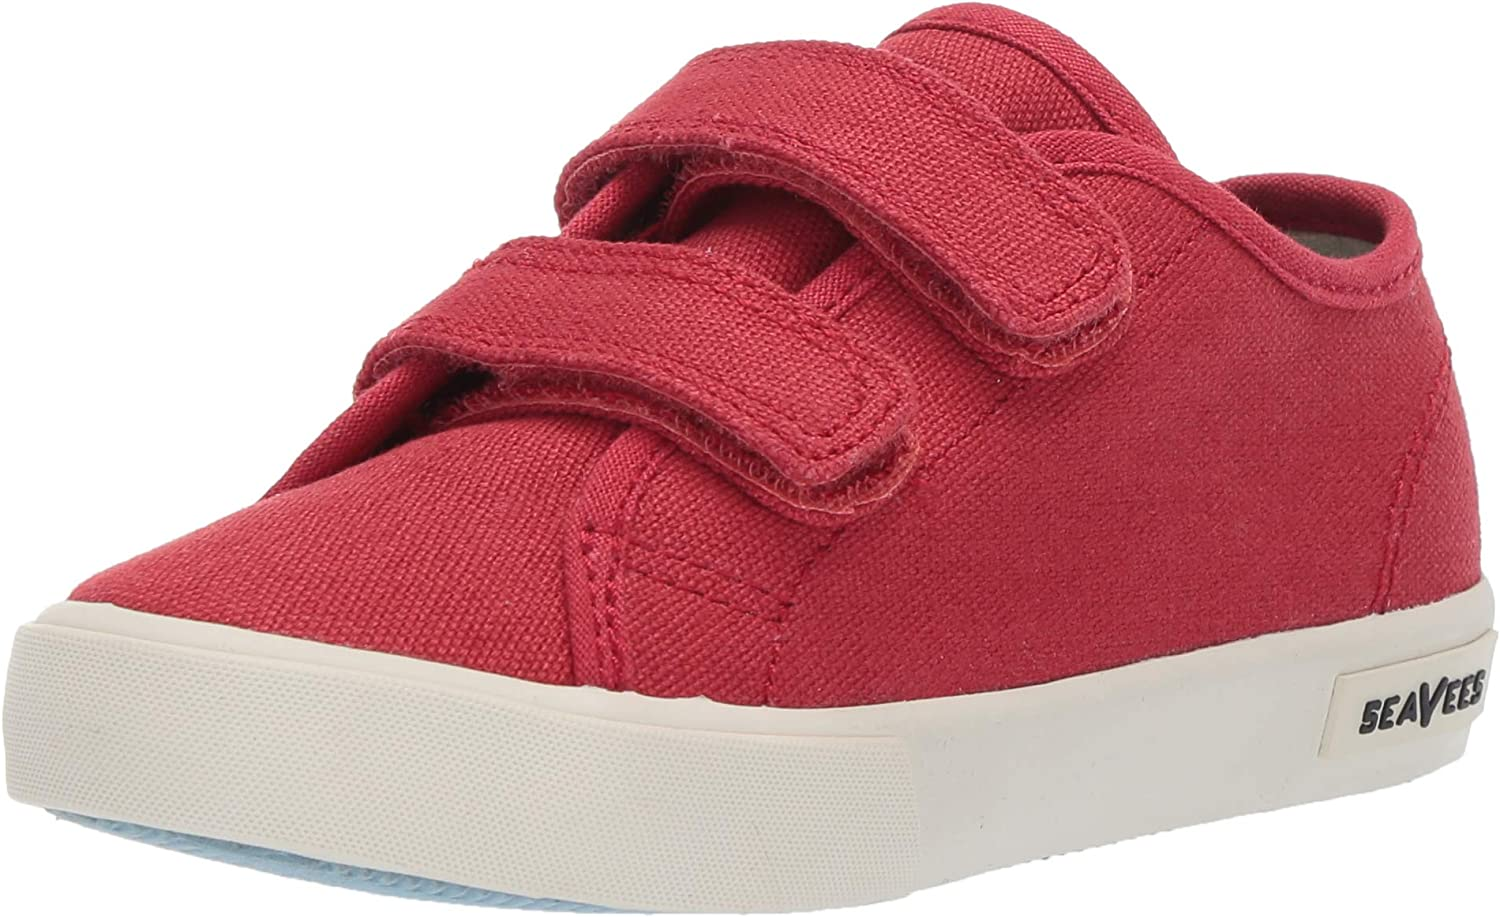 SeaVees Unisex-Child Kids Standard Minneapolis Mall Limited time cheap sale Monterey Sneaker